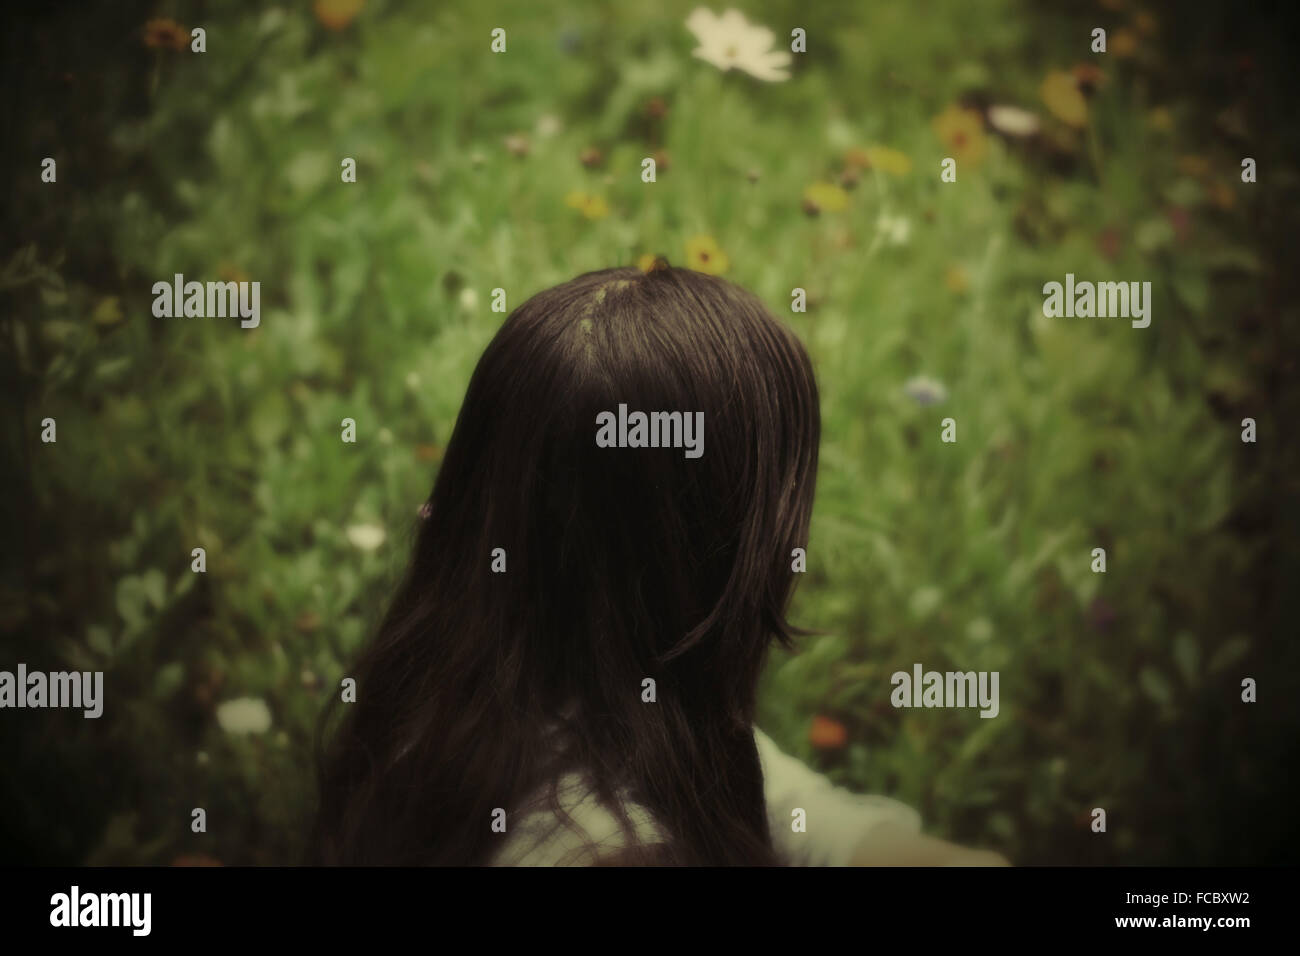 Woman Sitting In The Garden - Stock Image